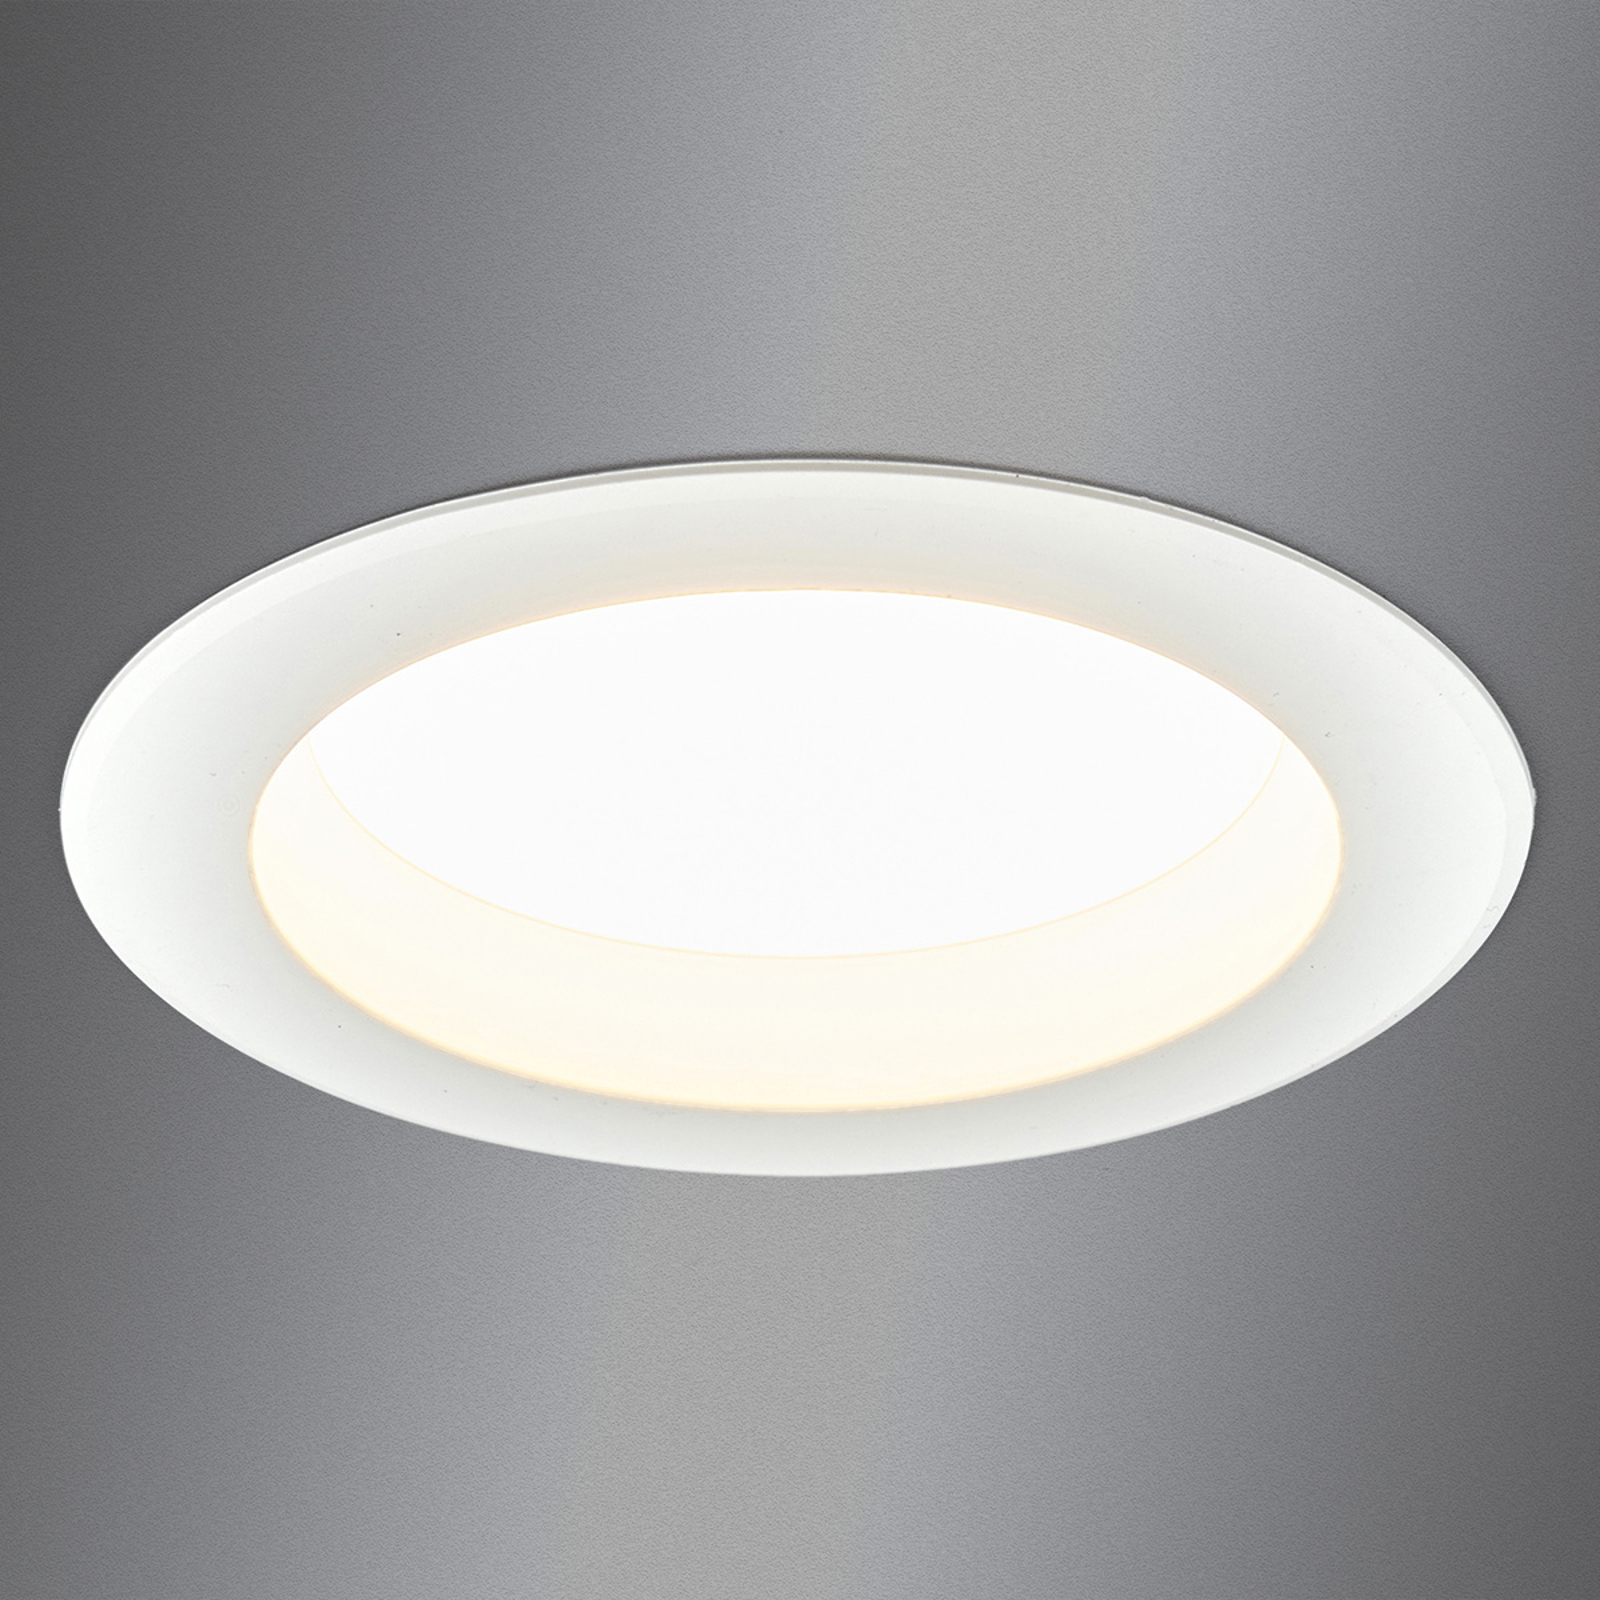 Potente downlight rotondo LED Arian, 14,5cm 12,5W